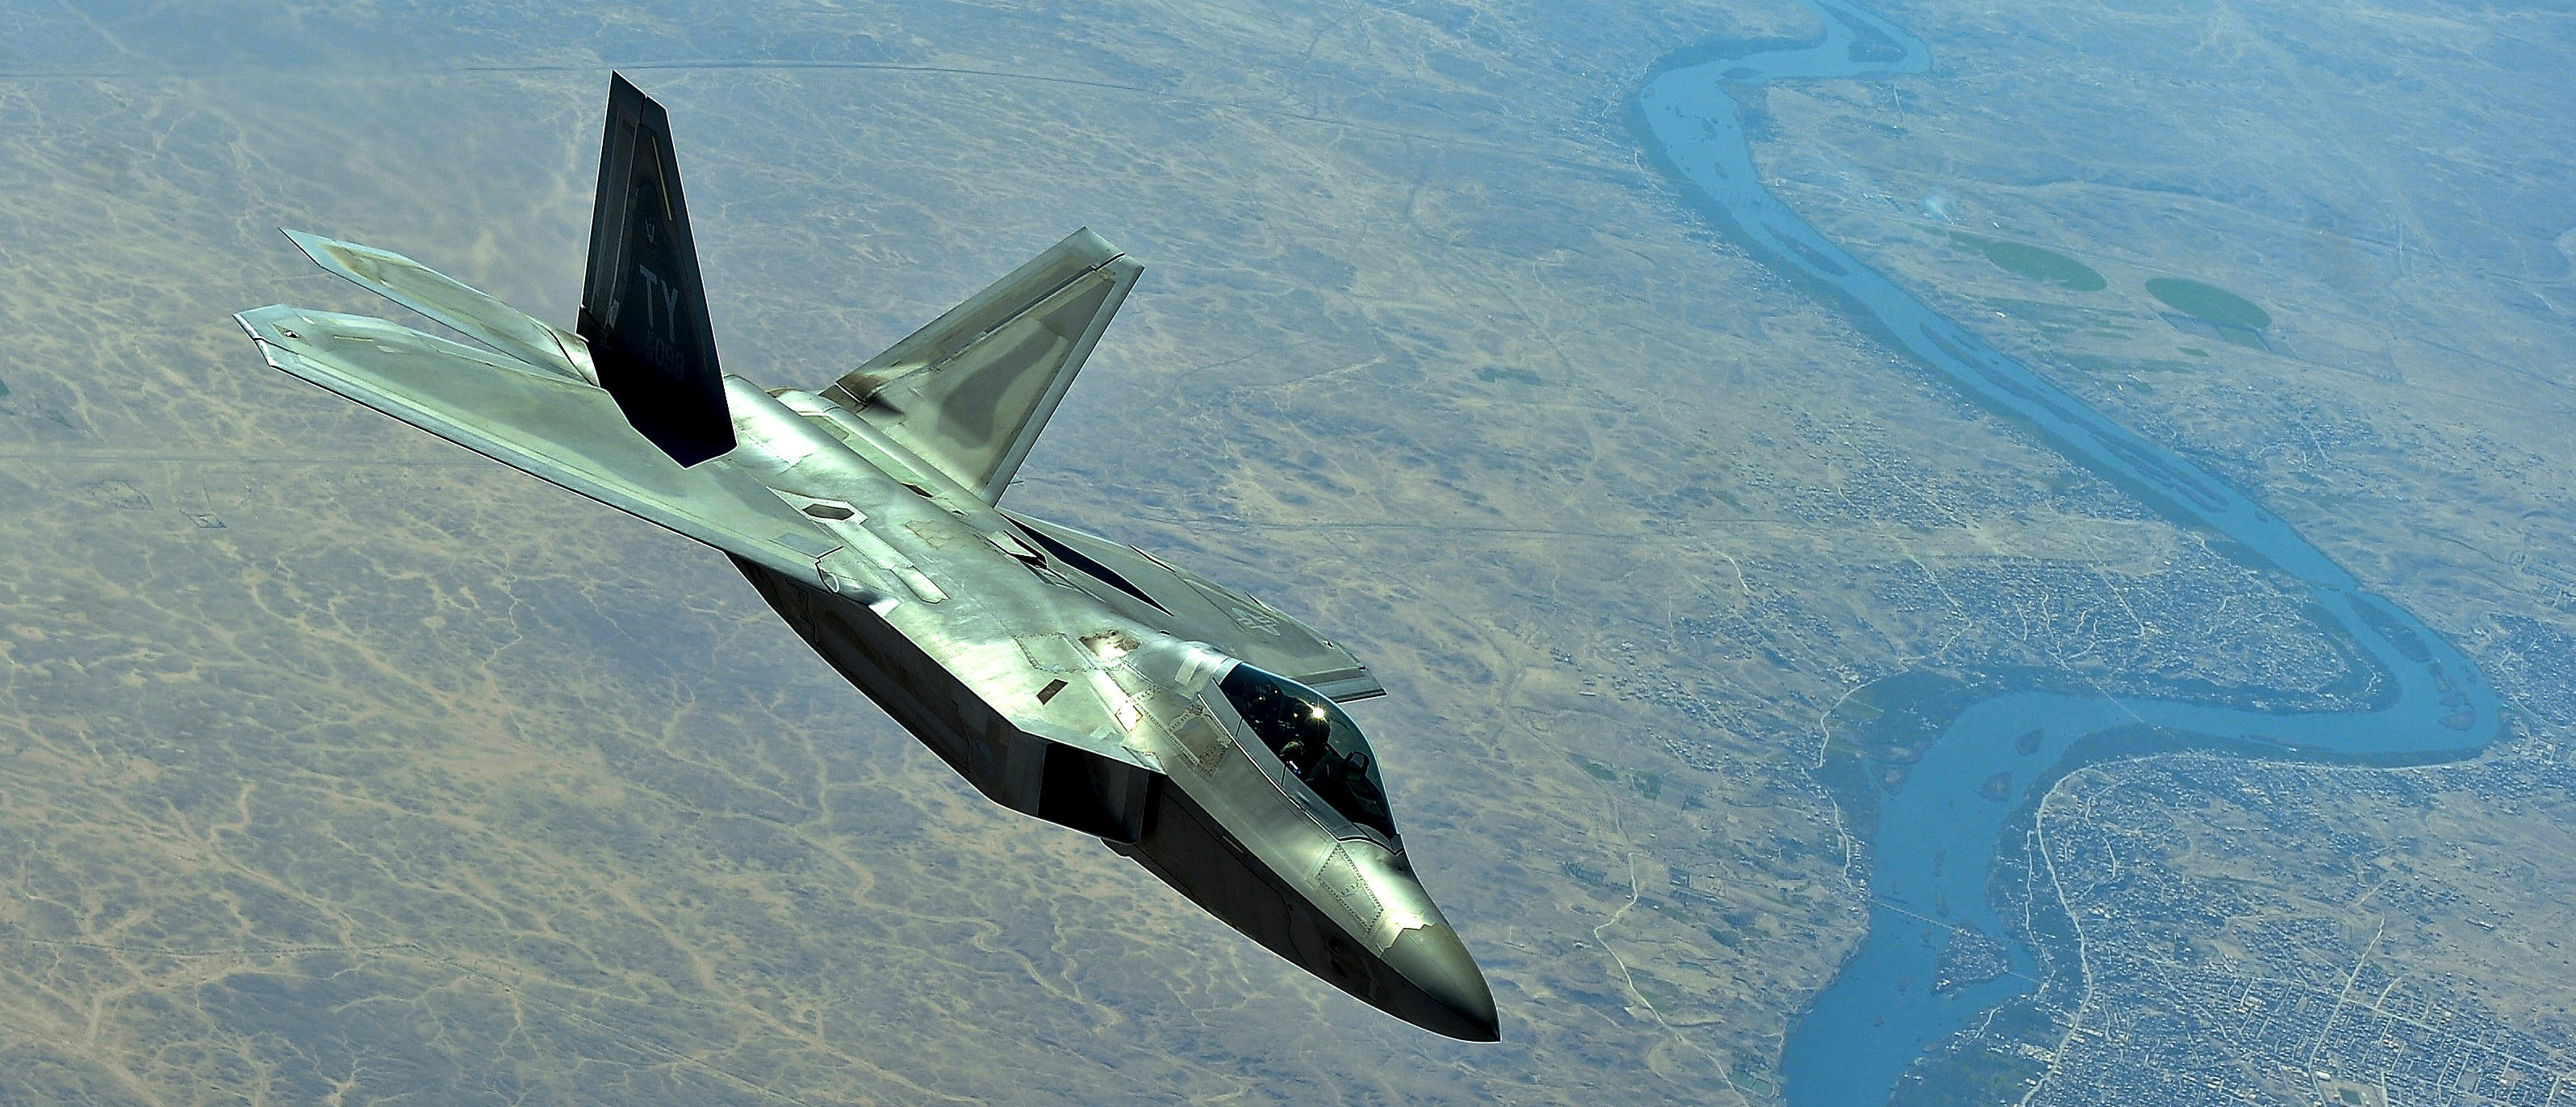 A U.S. Air Force F-22 assigned to the 380th Air Expeditionary Wing, Al Dhafra Air Base, United Arab Emirates disconnects from a KC-10 Extender after receiving fuel over Syria March 2,2018. (U.S. Air Force photo by Tech. Sgt. Anthony Nelson Jr.)